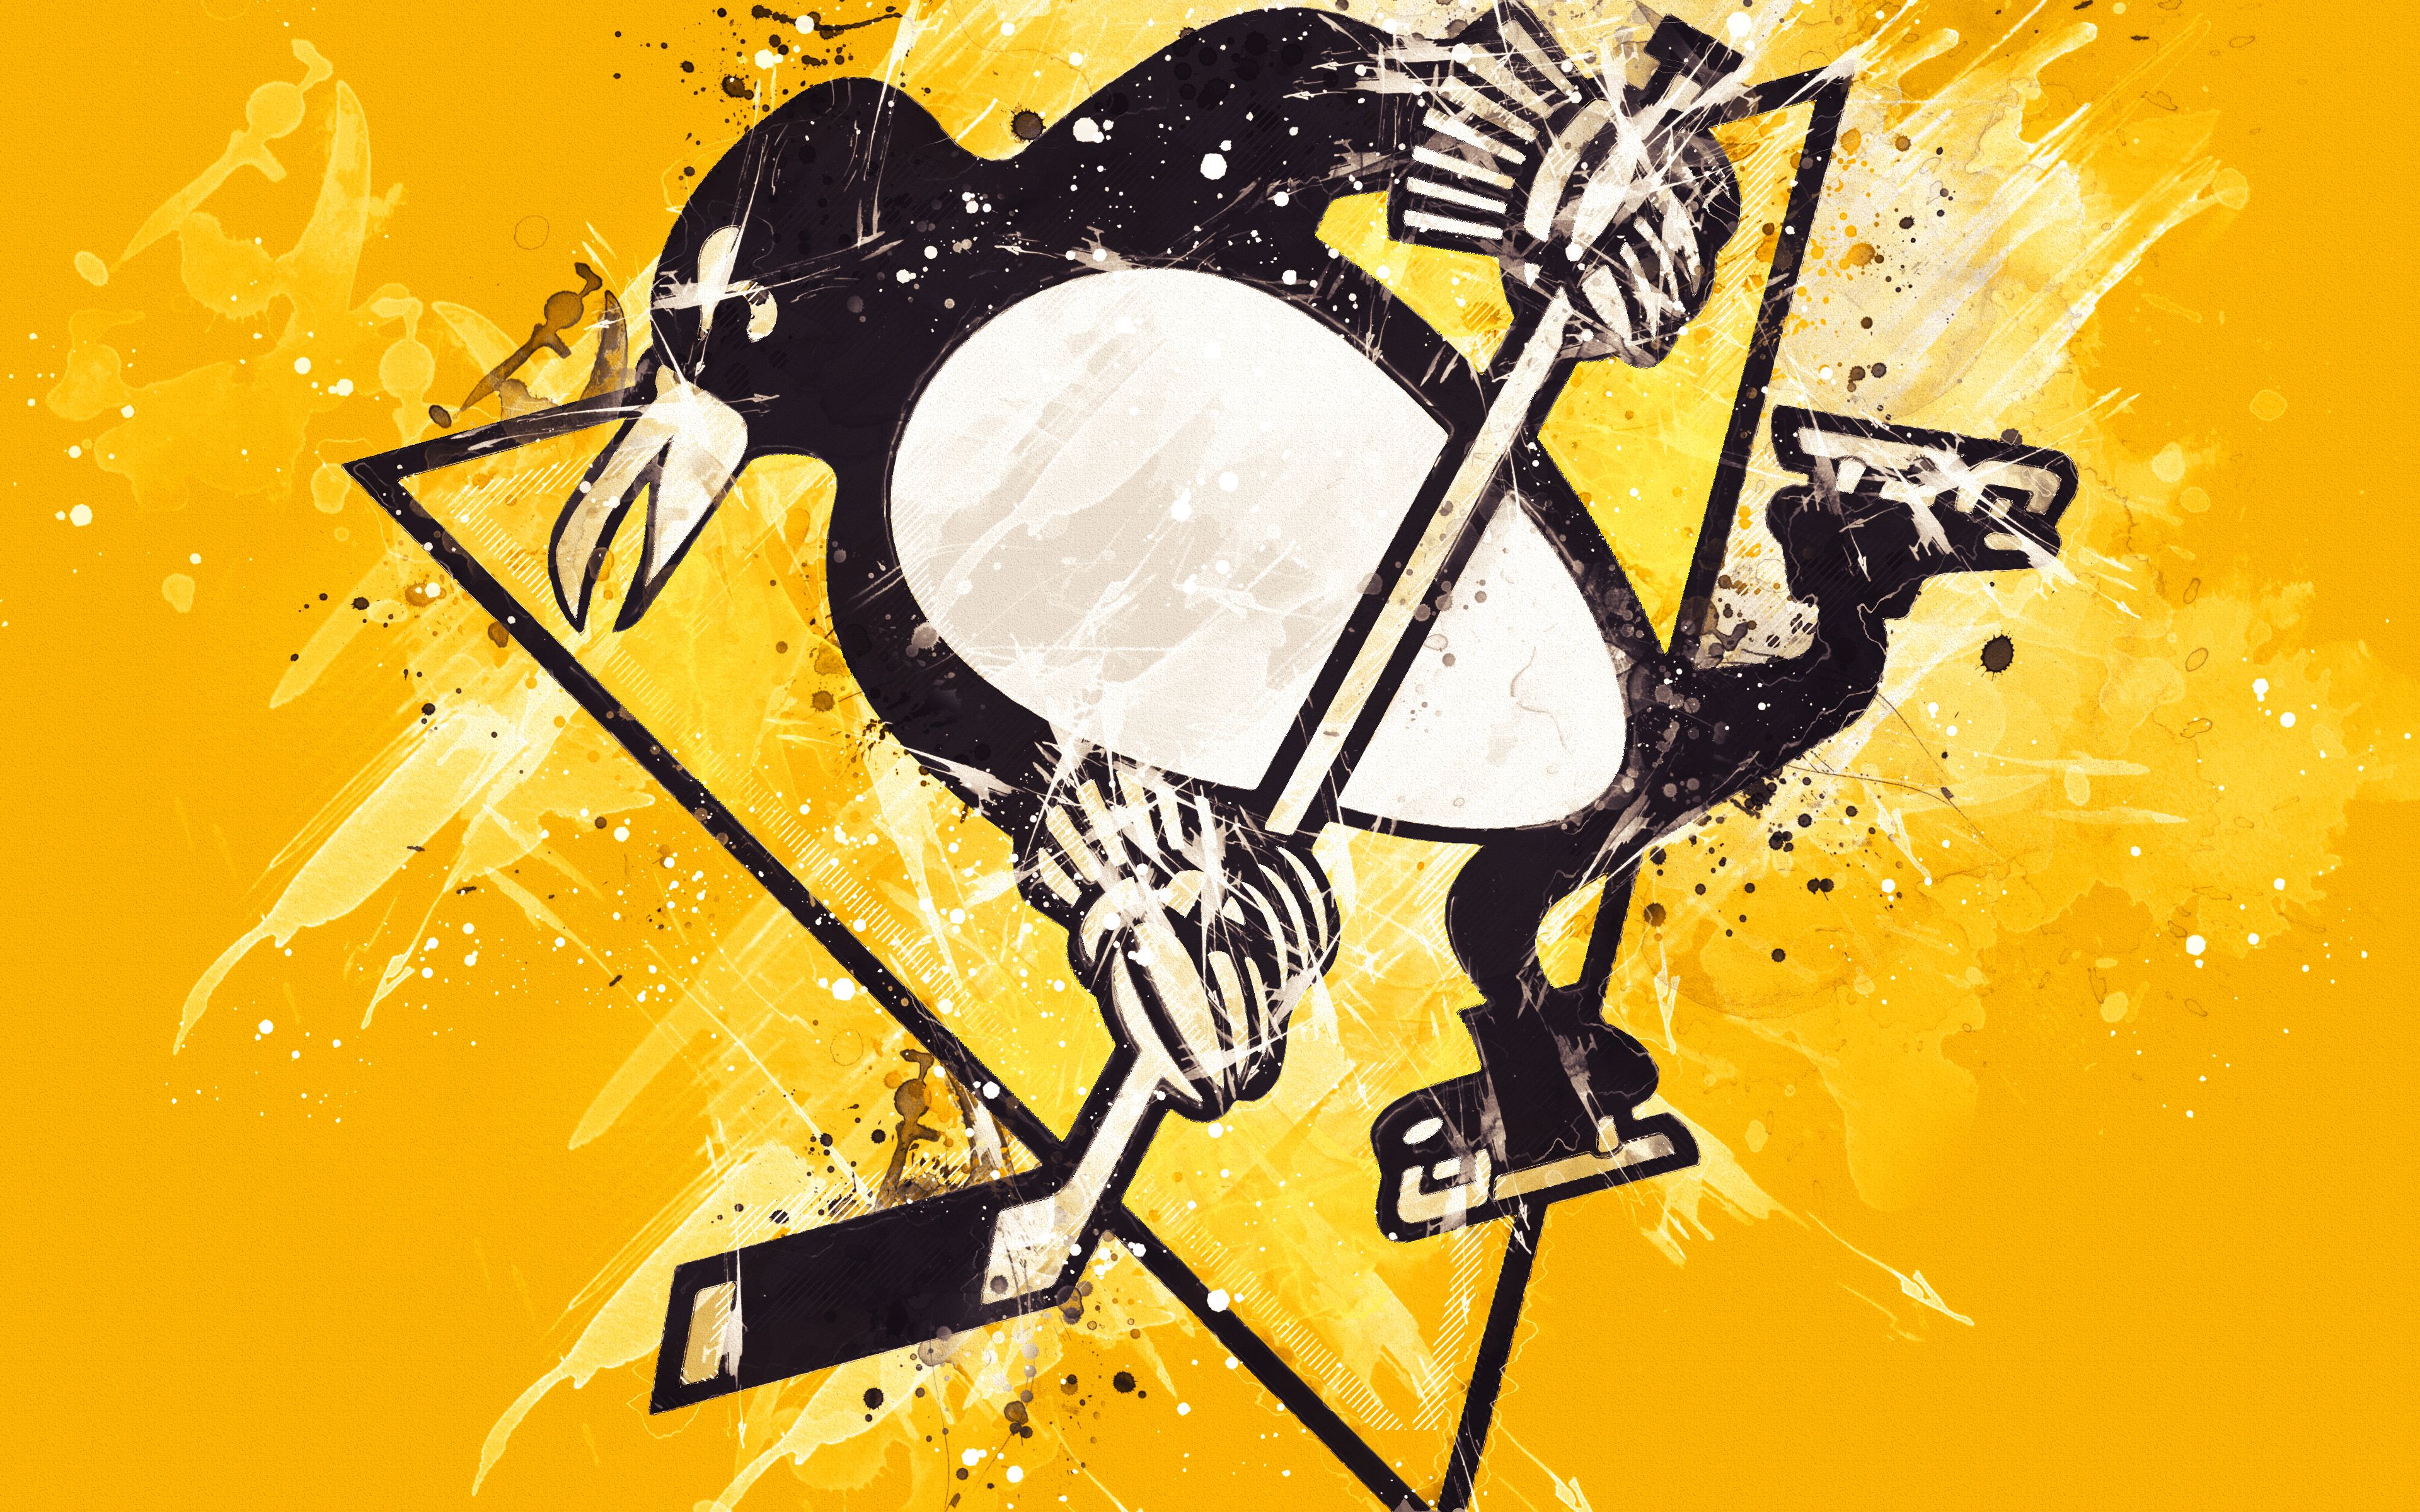 Pittsburgh Penguins 4k Ultra Hd Wallpaper Background Image